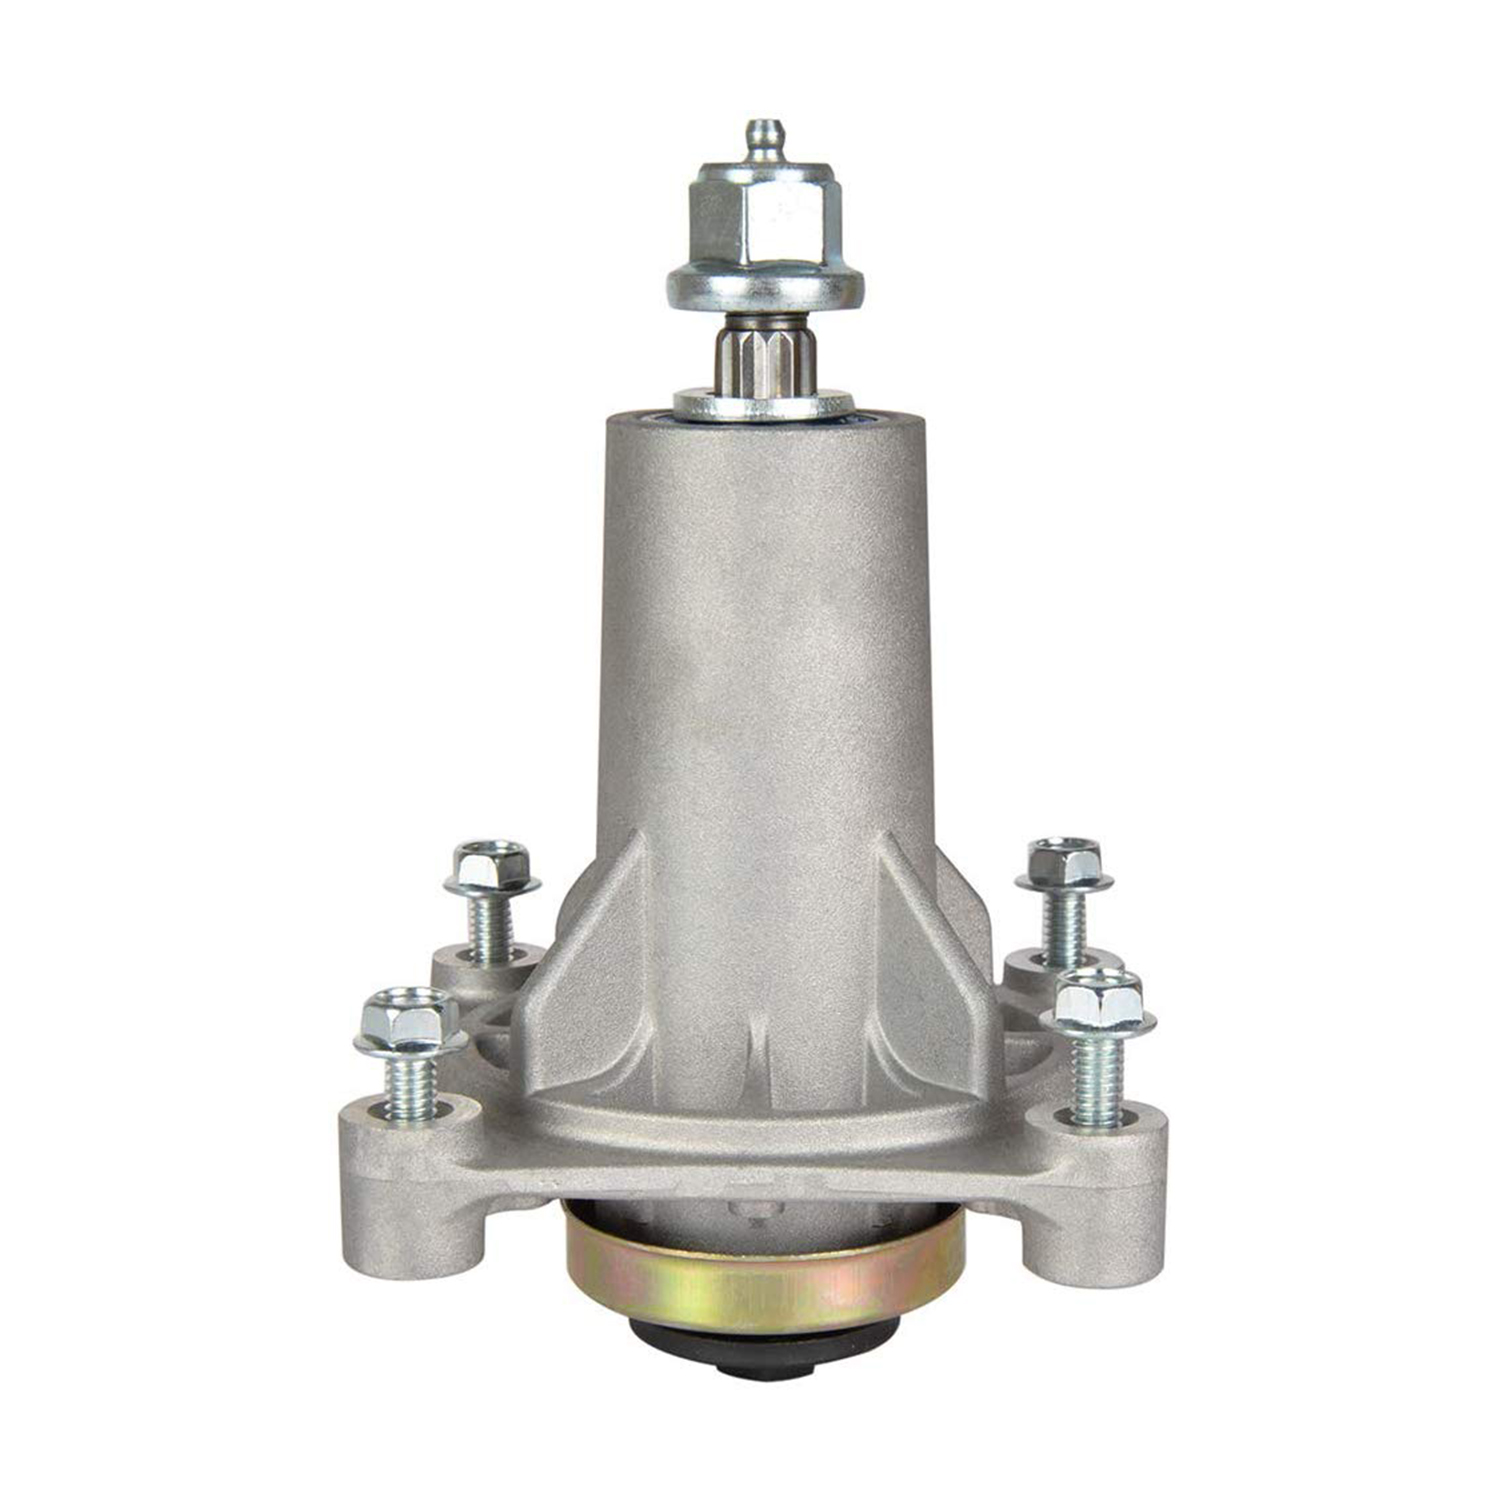 Lawn Mower Spindle Assembly Replaces Ariens 21549012, Husqvarna 532-18-72-92, 587125401, Poulan 539-112057